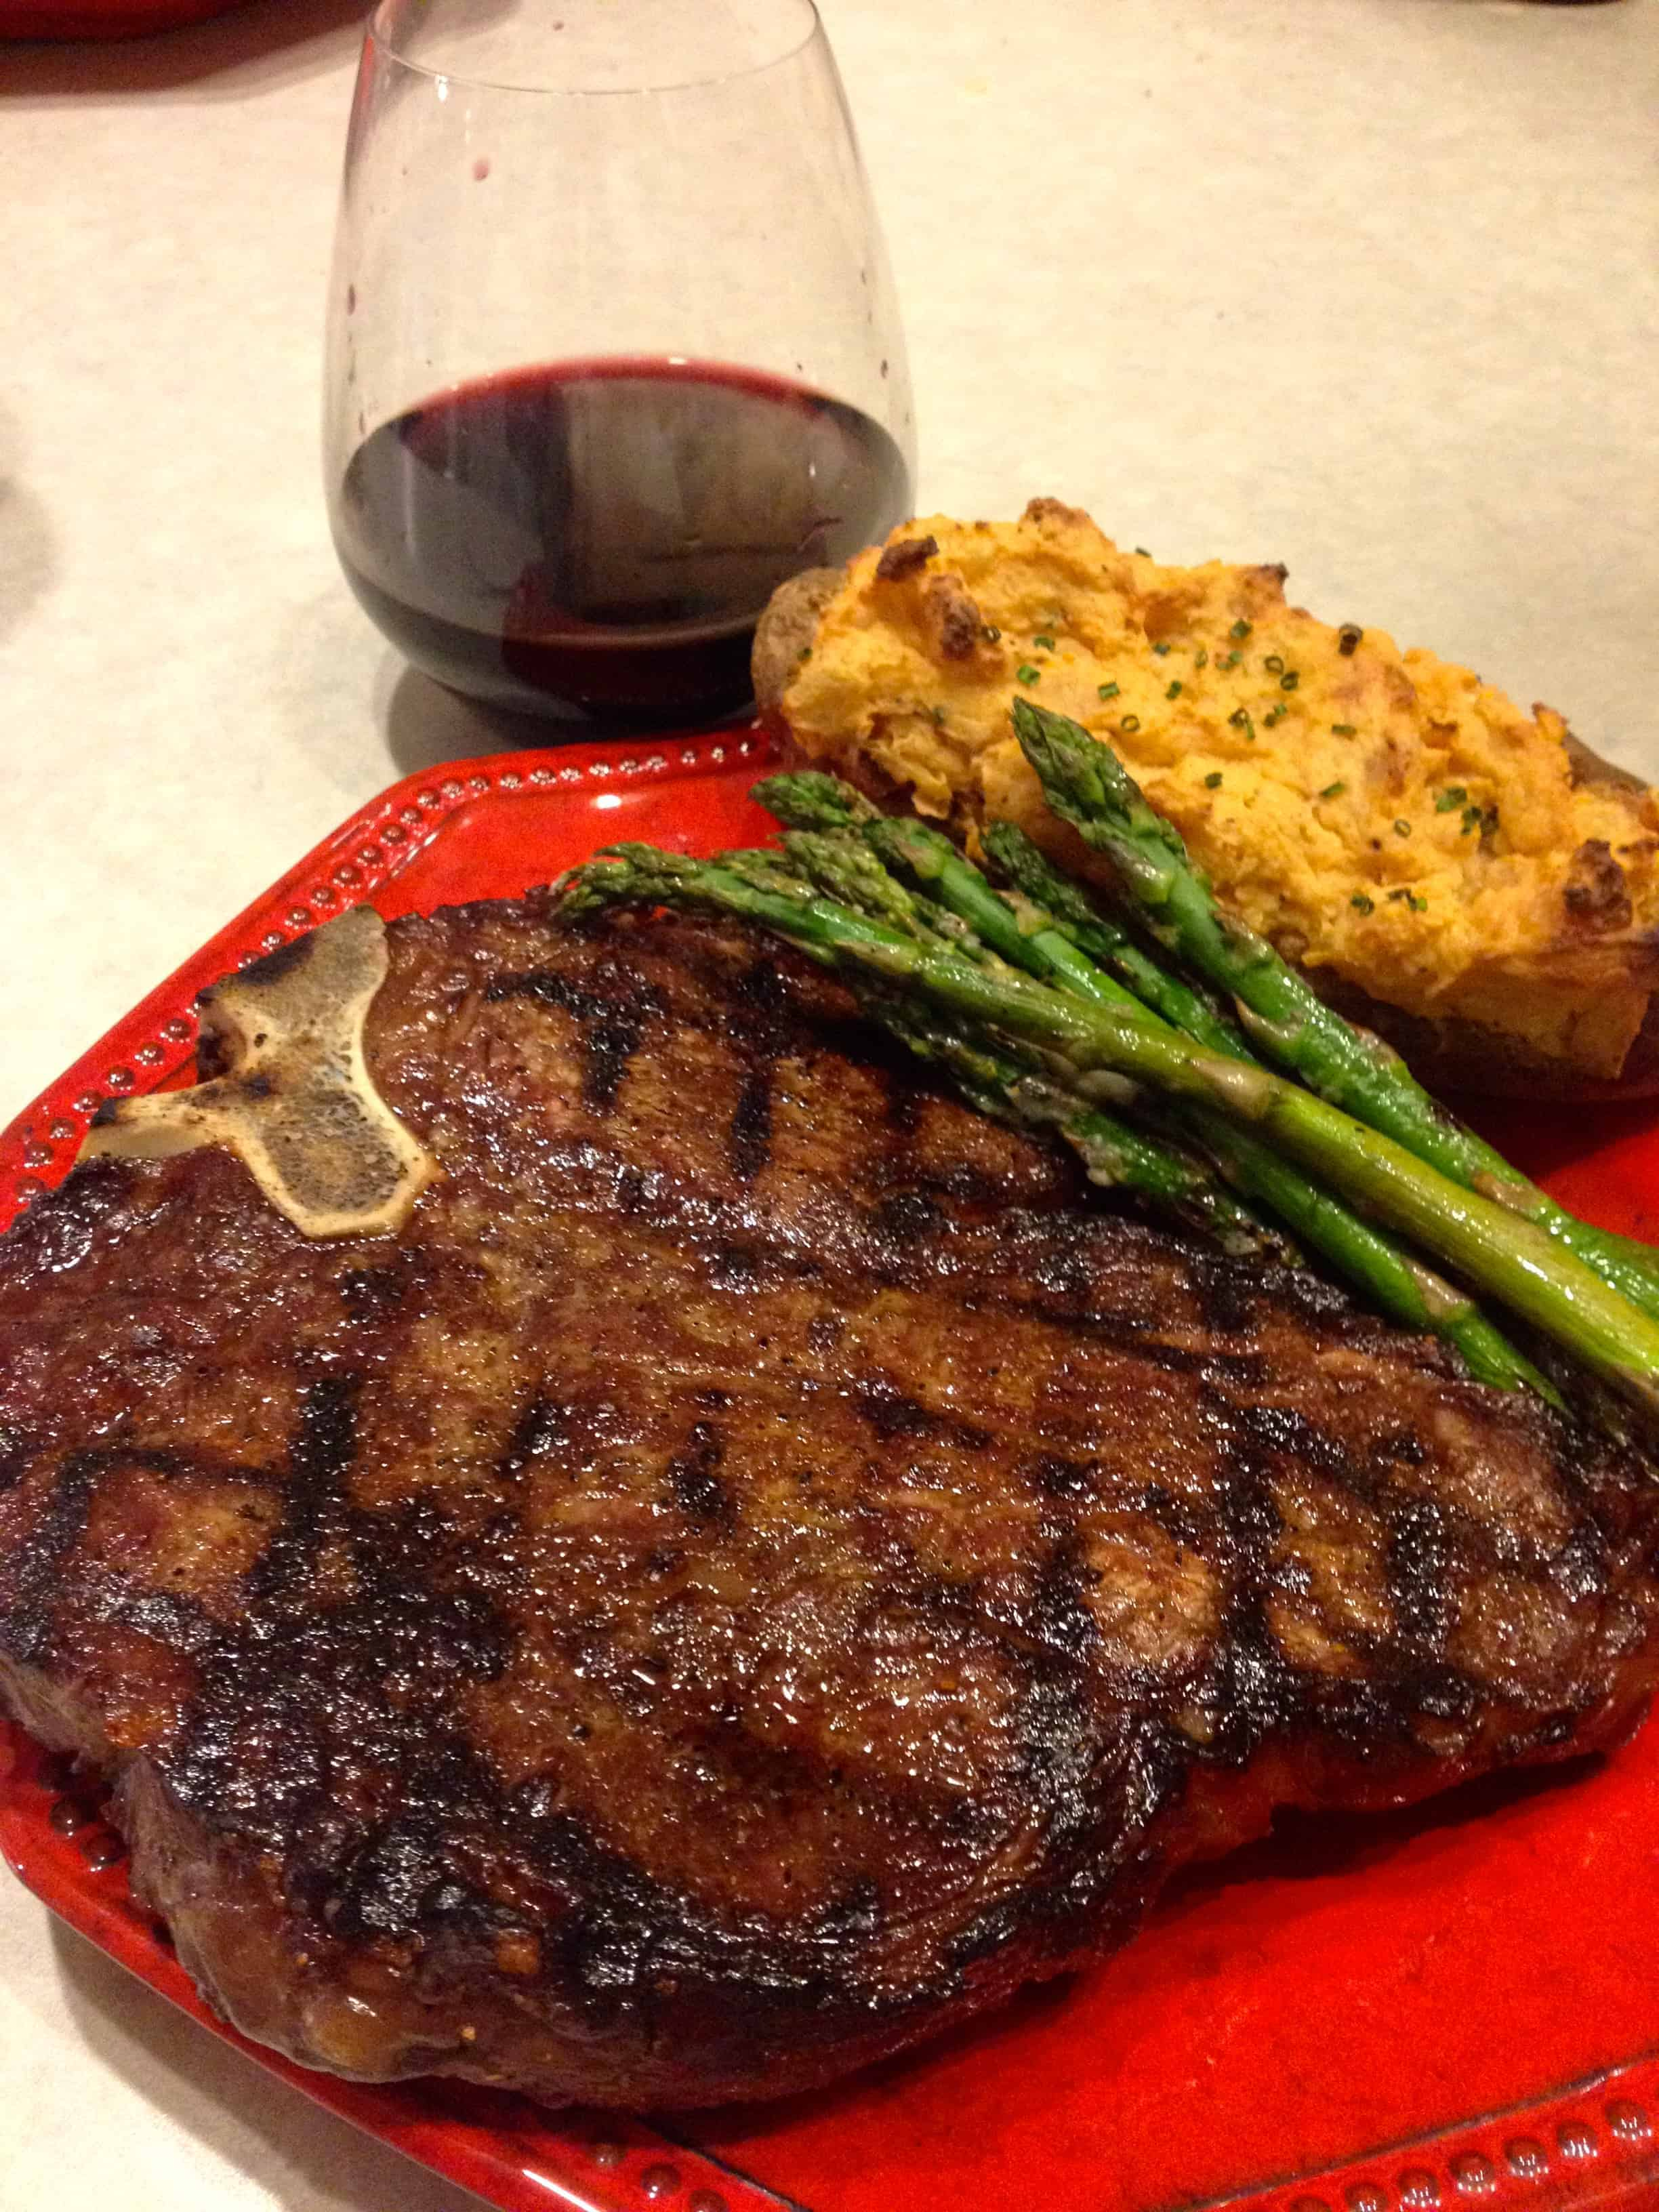 Grilling Montana's How to Grill the Perfect Steak Every Time- Reverse Sear Method